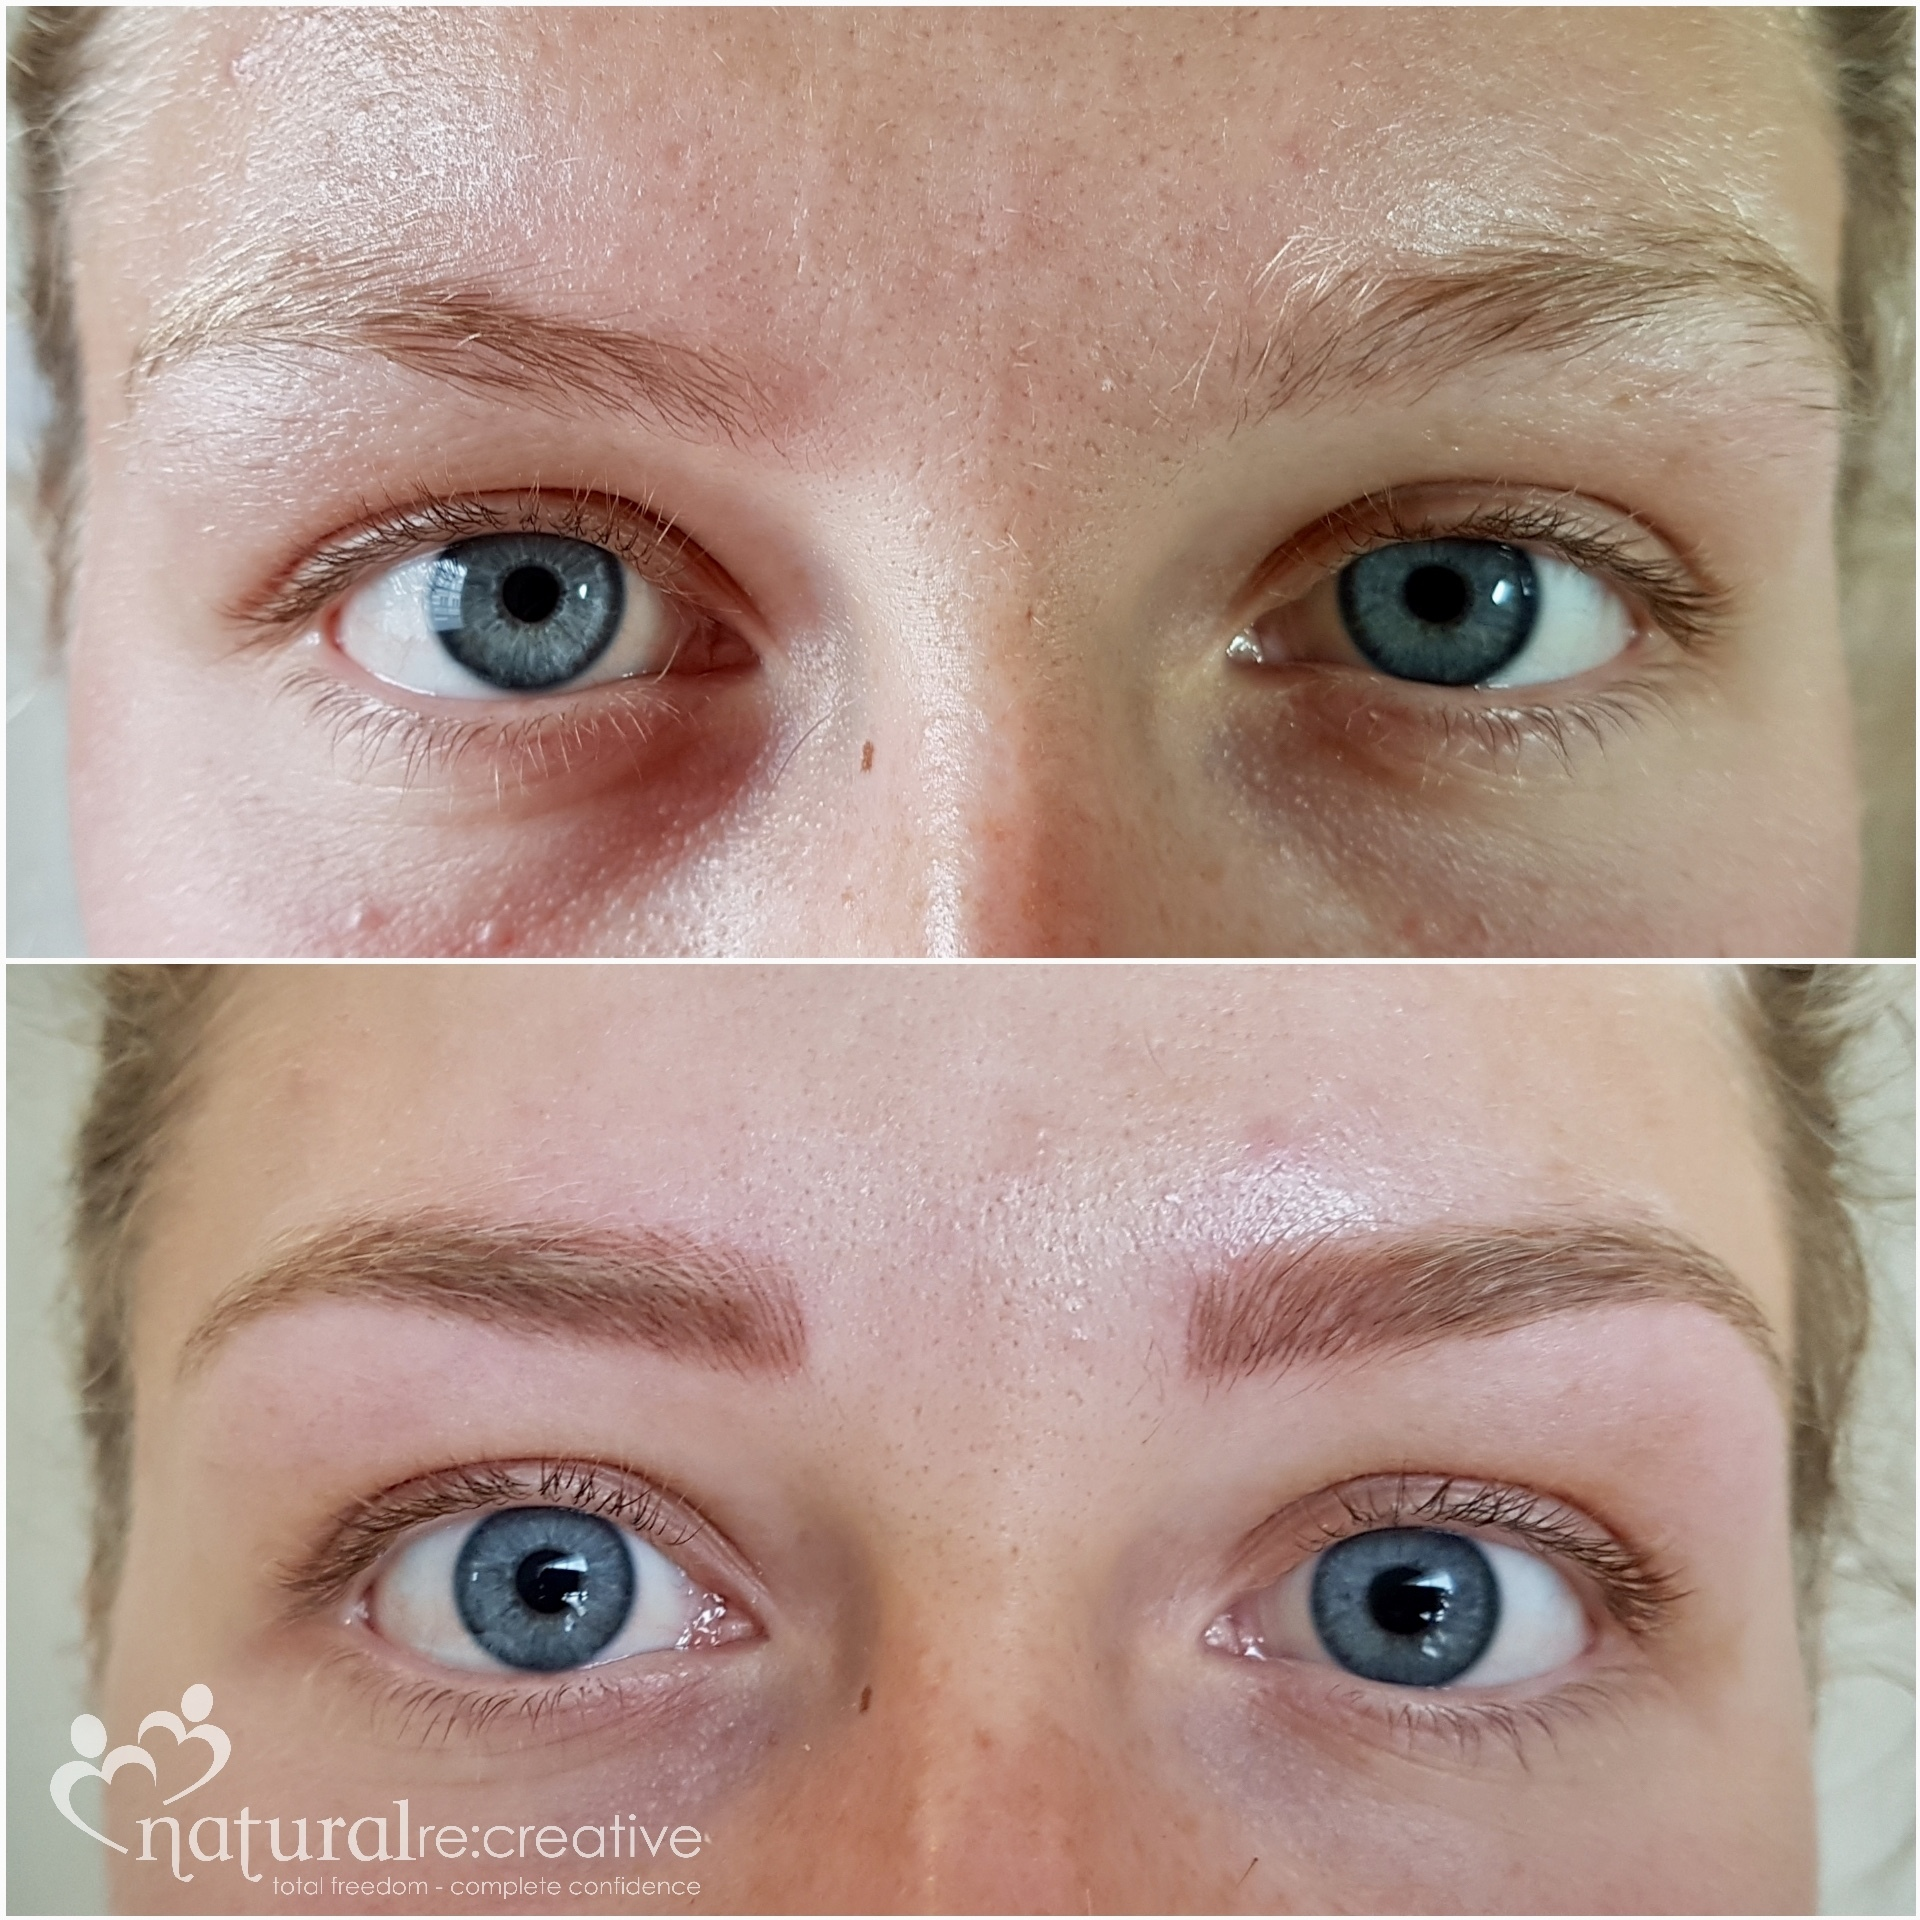 Balance and Symmetry with Nano Brows